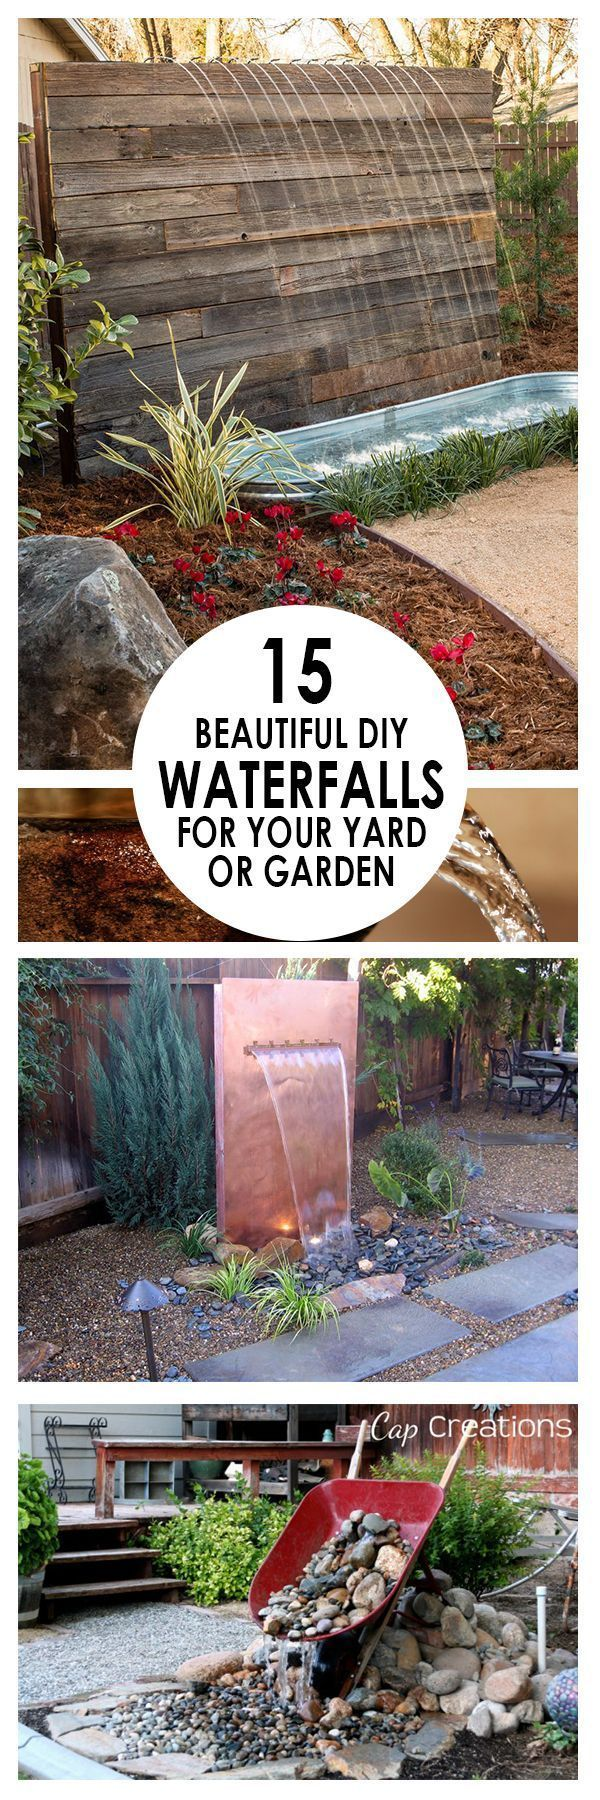 Create a relaxing environment in your backyard